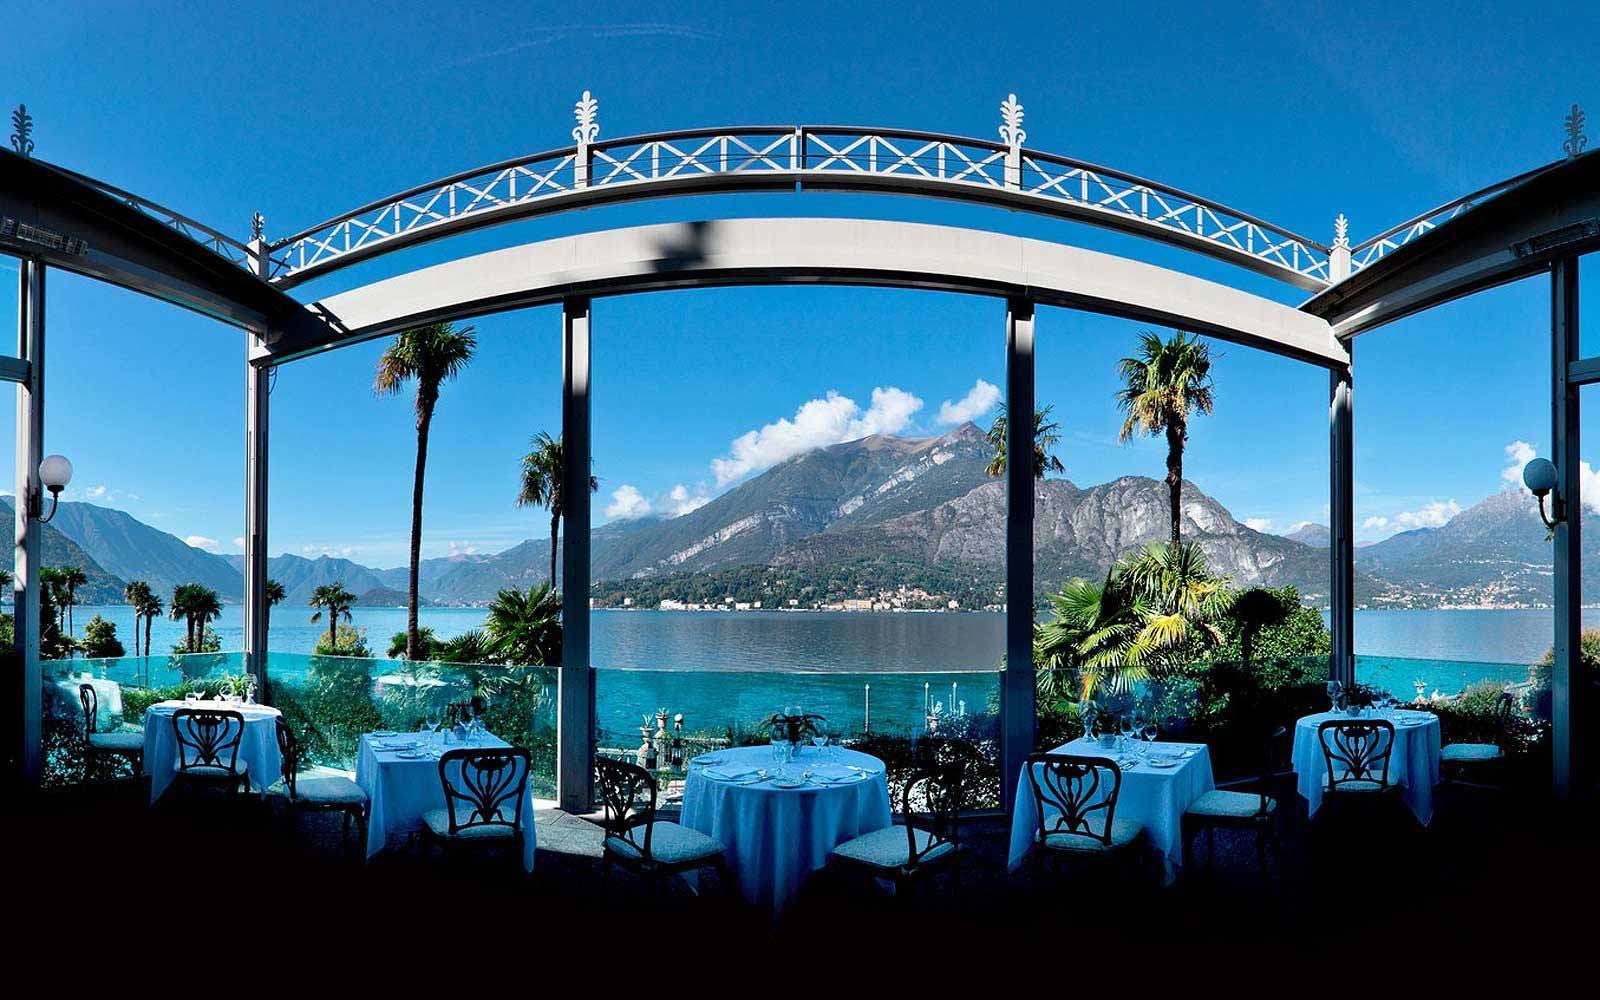 View from the outside terrace at Grand Hotel Villa Serbelloni